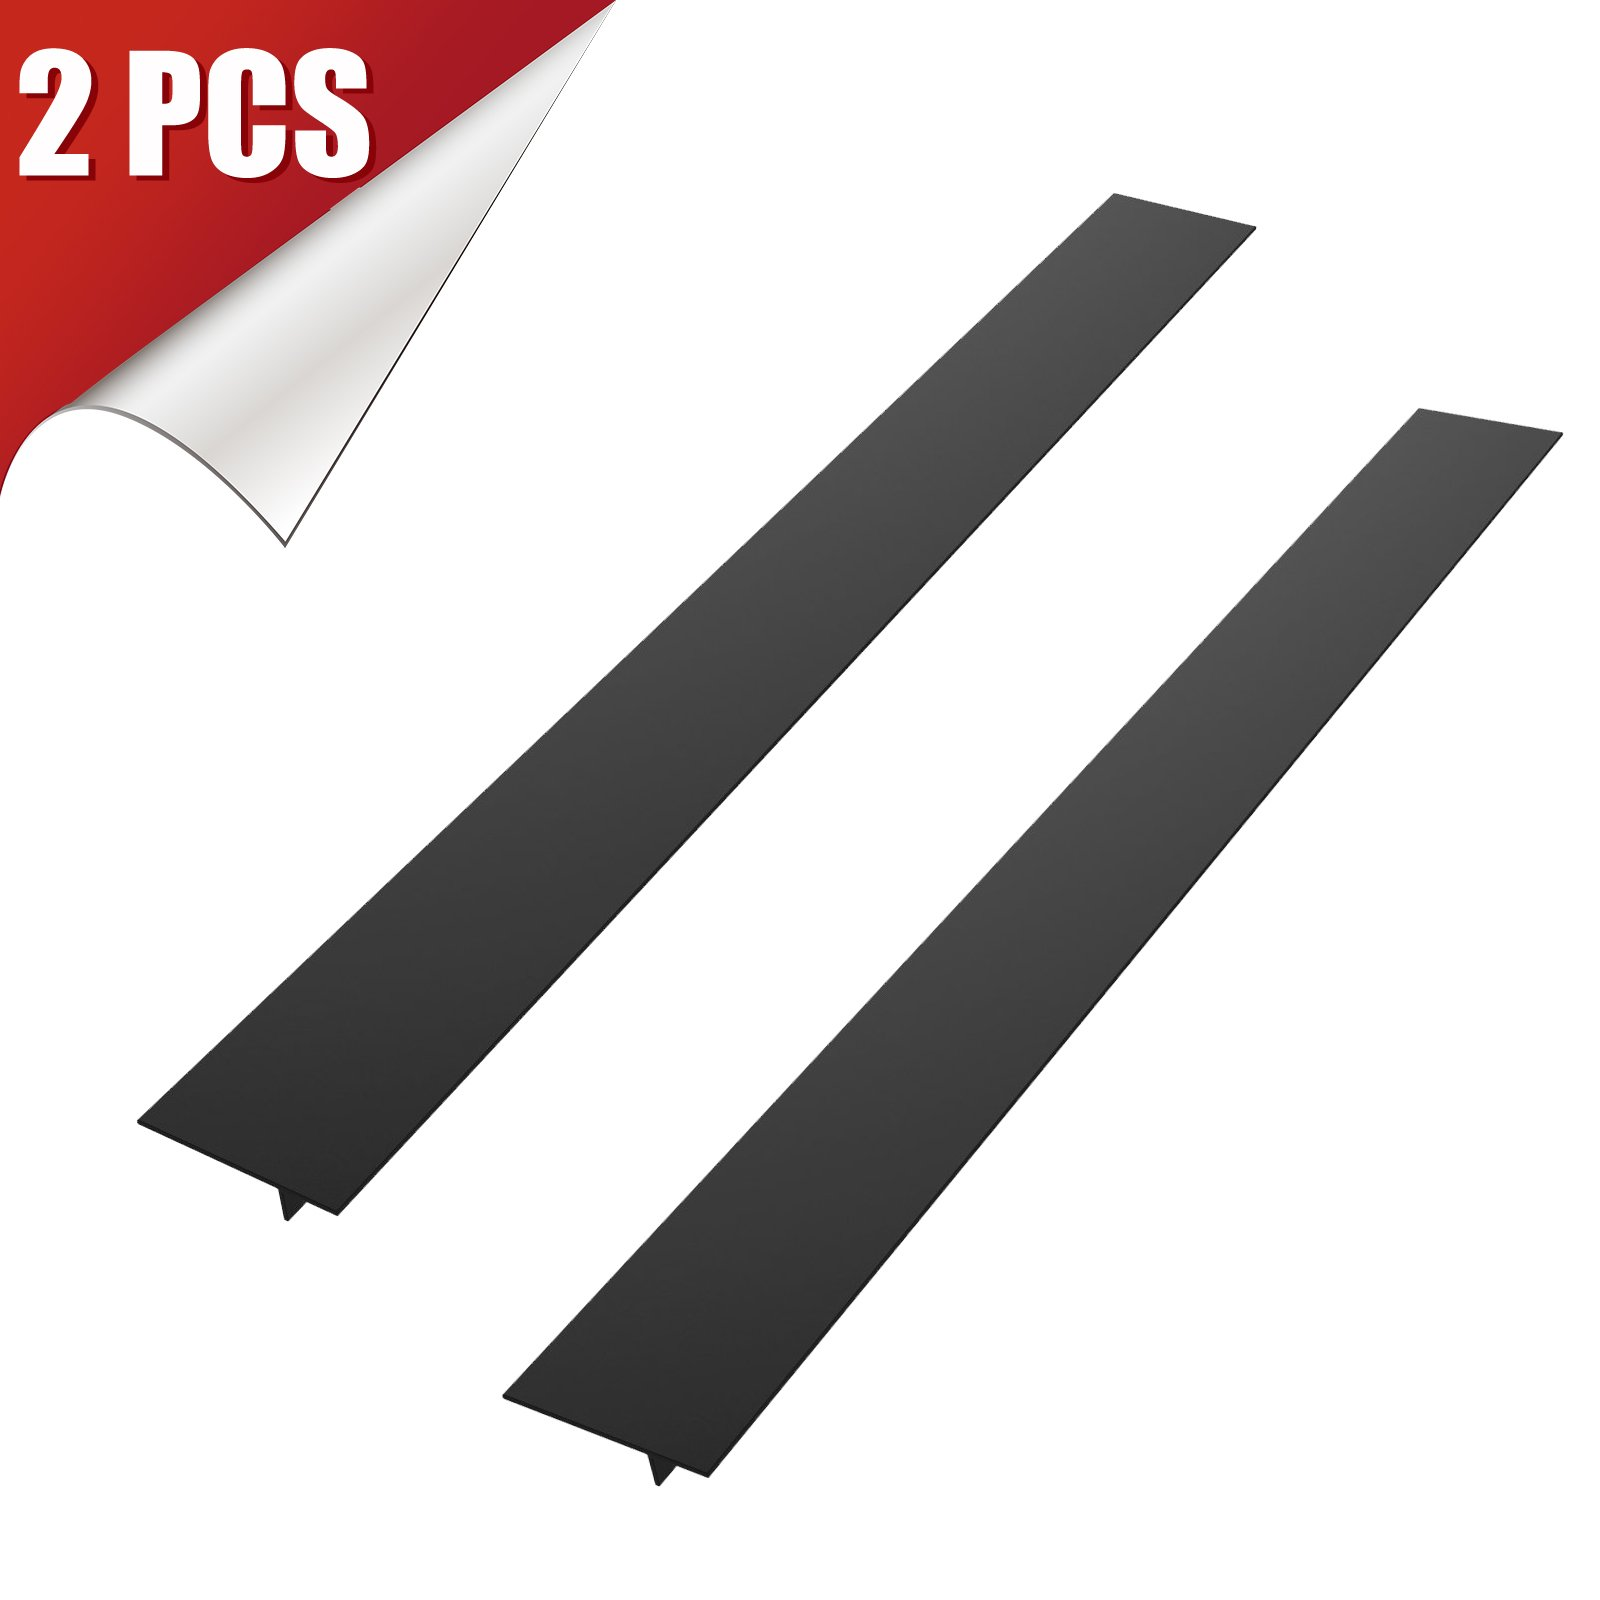 LinkStyle 2-Pack Silicone Stove Counter Gap Cover, Easy Clean Gap Filler Sealing Spills Between Kitchen Counter, Appliances, Stovetop, Oven, Washing Machine, Washer, Dryer (Black)